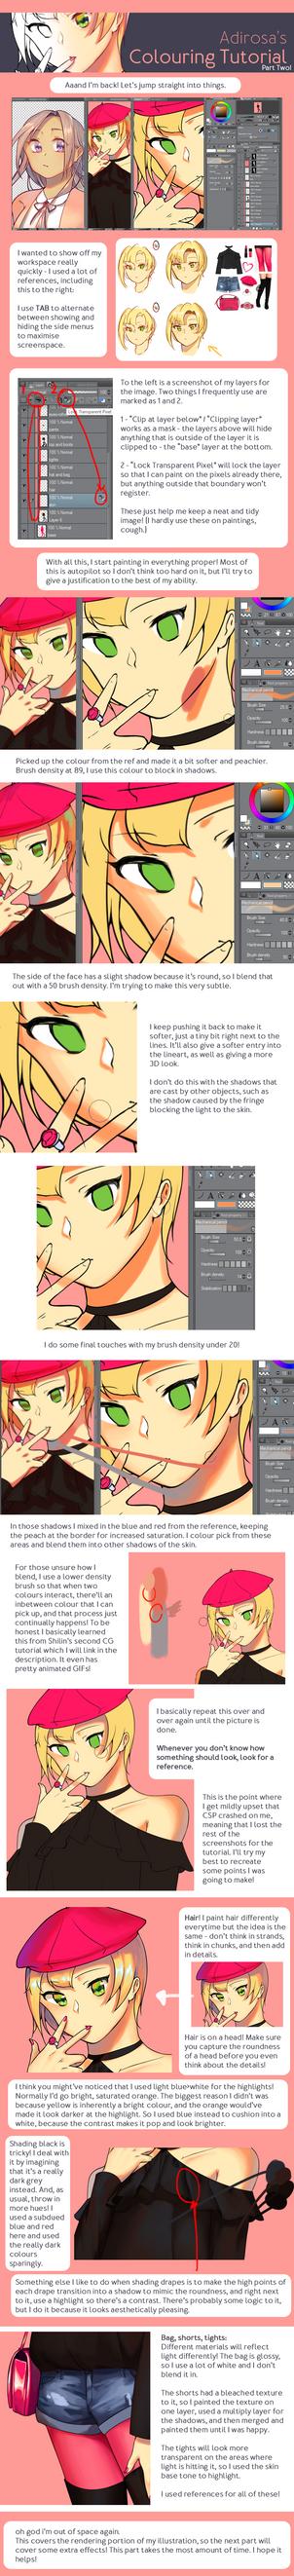 Adirosa's Colouring Tutorial: Part Two by adirosa